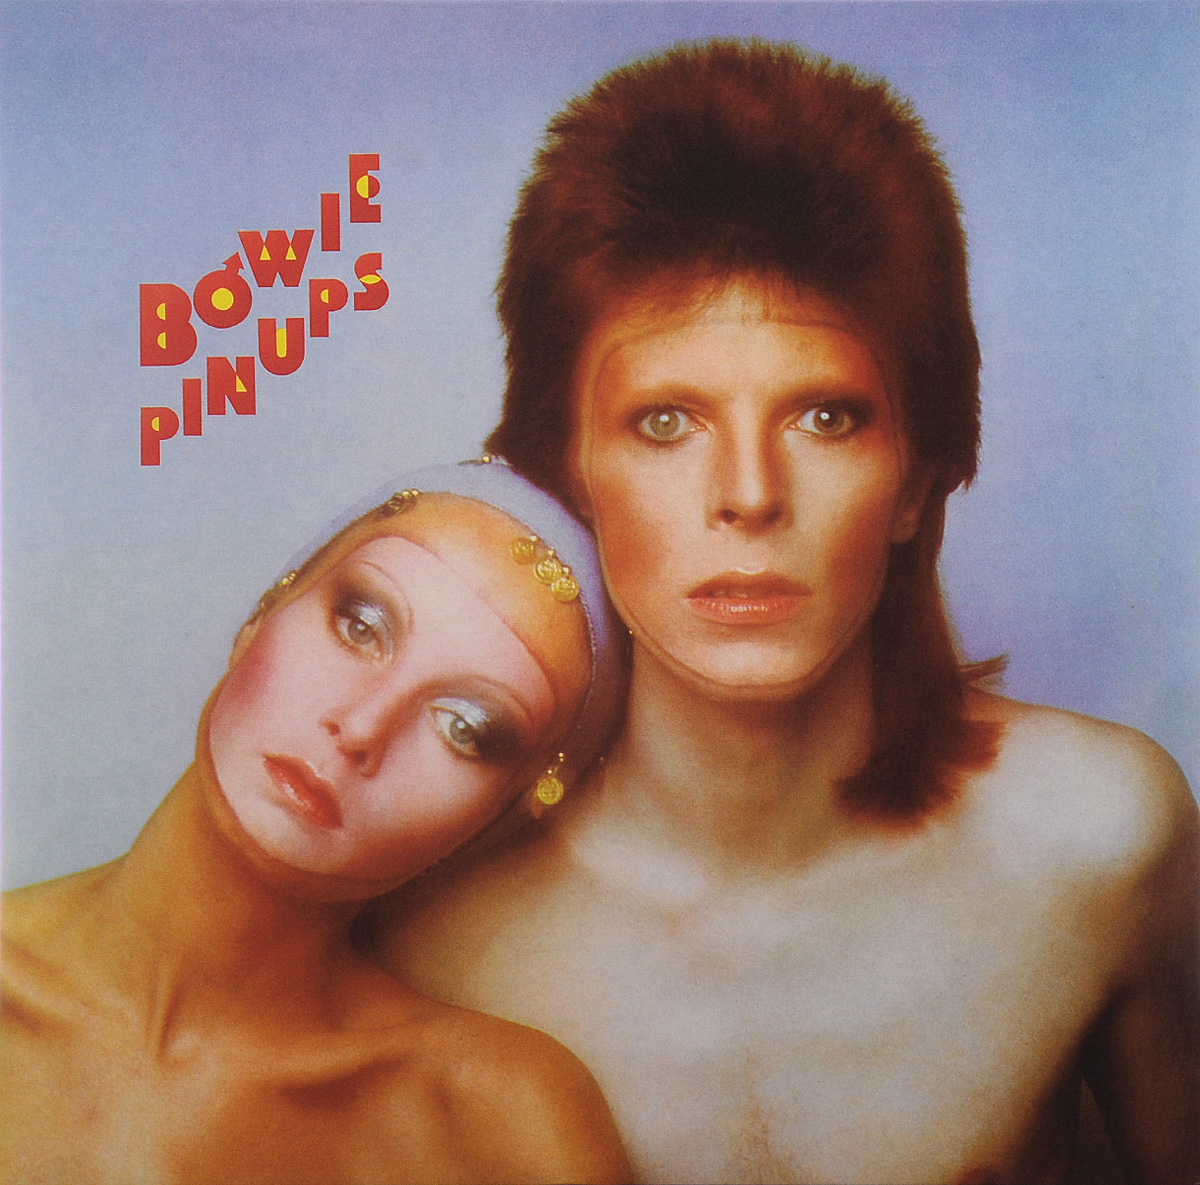 Дэвид Боуи David Bowie. Pinups (LP) дэвид боуи david bowie live santa monica 72 2 lp